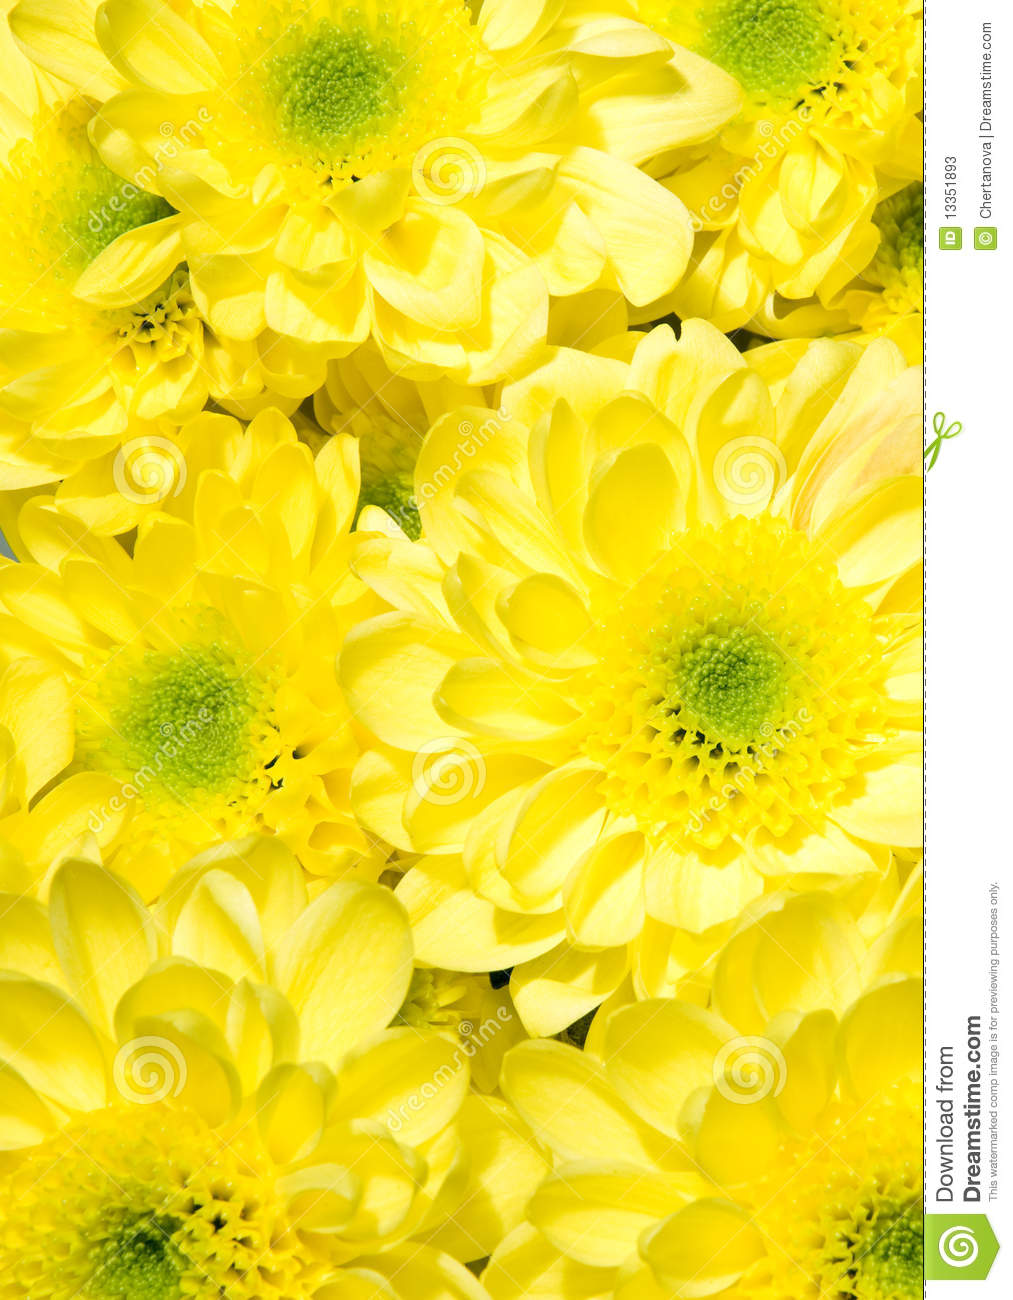 Beautiful christmas bells royalty free stock - Bouquet Of Yellow Chrysanthemums Stock Photos Image 13351893